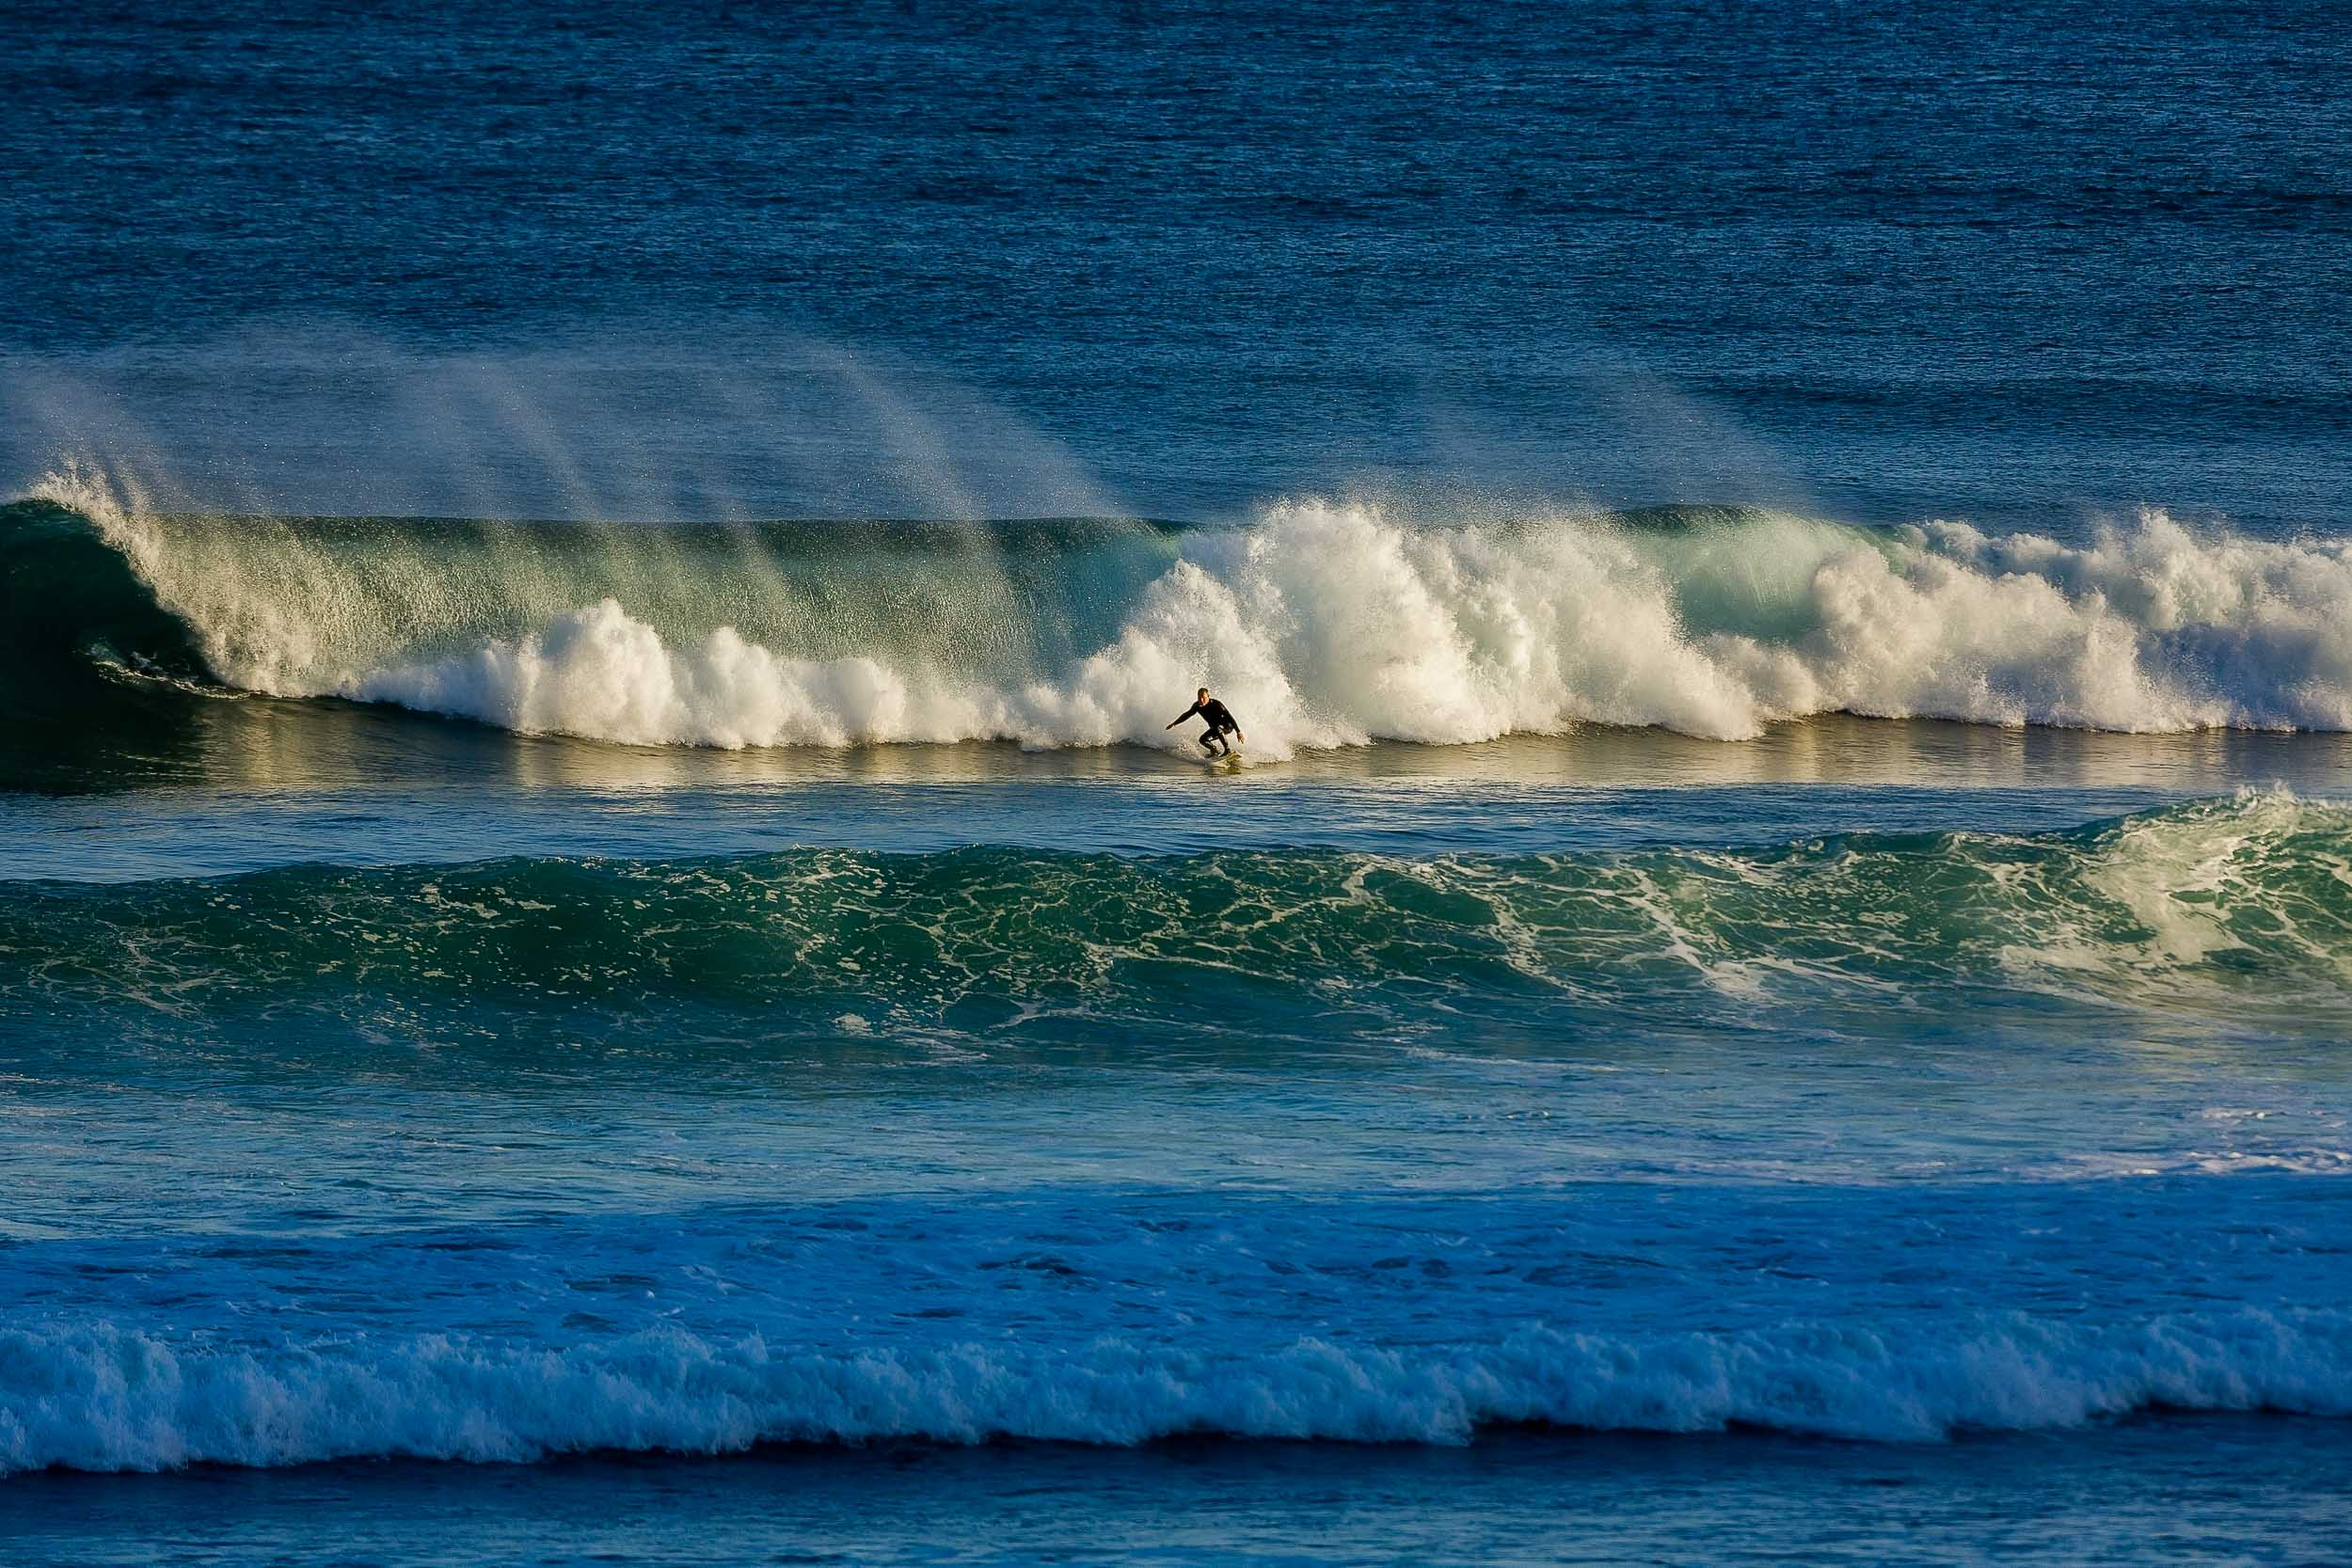 A    surfer   , catching some waves while being illuminated with    late afternoon light    at    Bells Beach, Australia   .